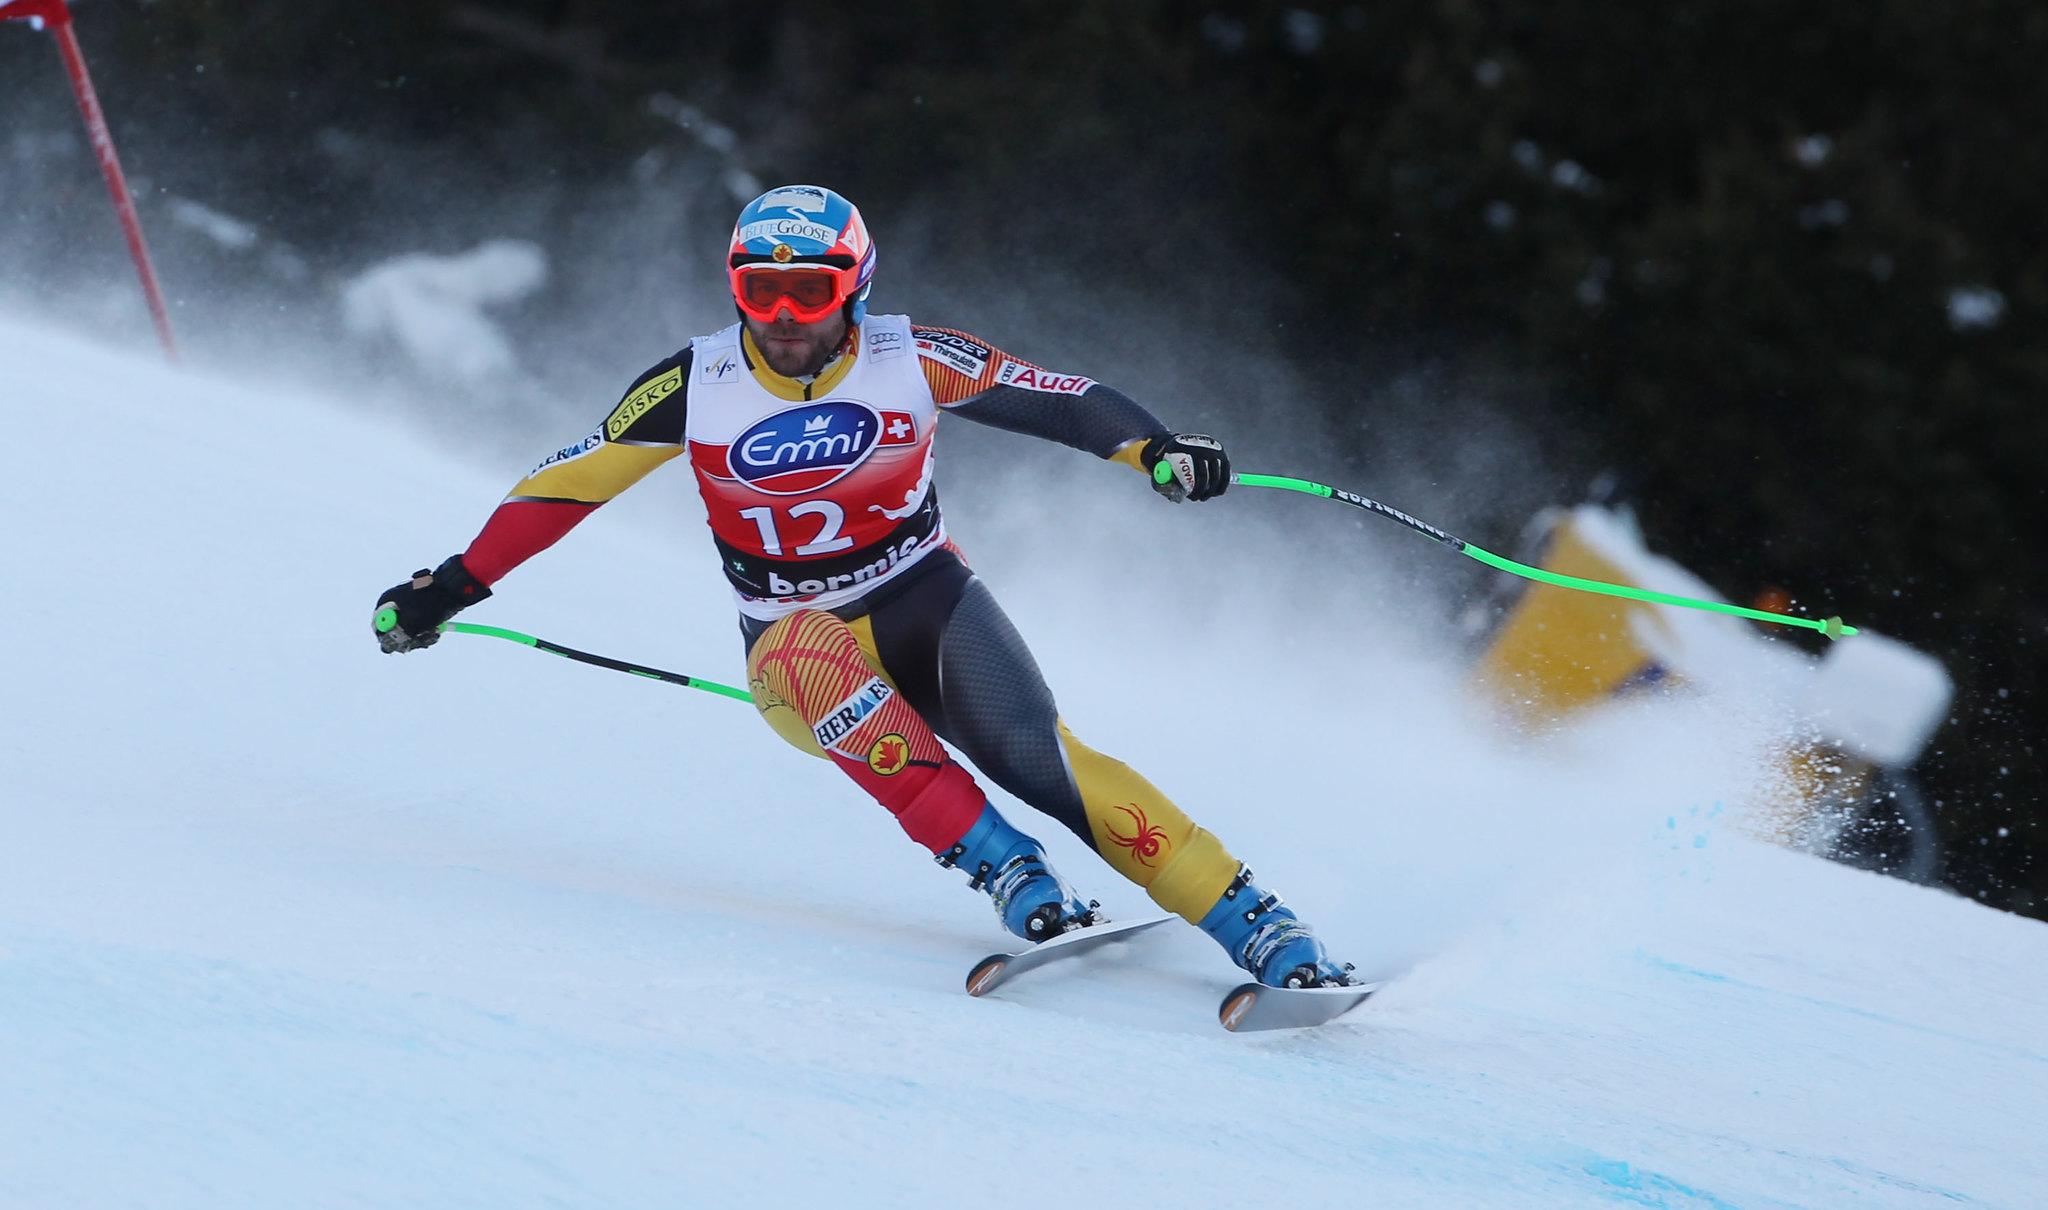 Jan Hudec carves down the men's downhill at the Bormio, Italy, World Cup.